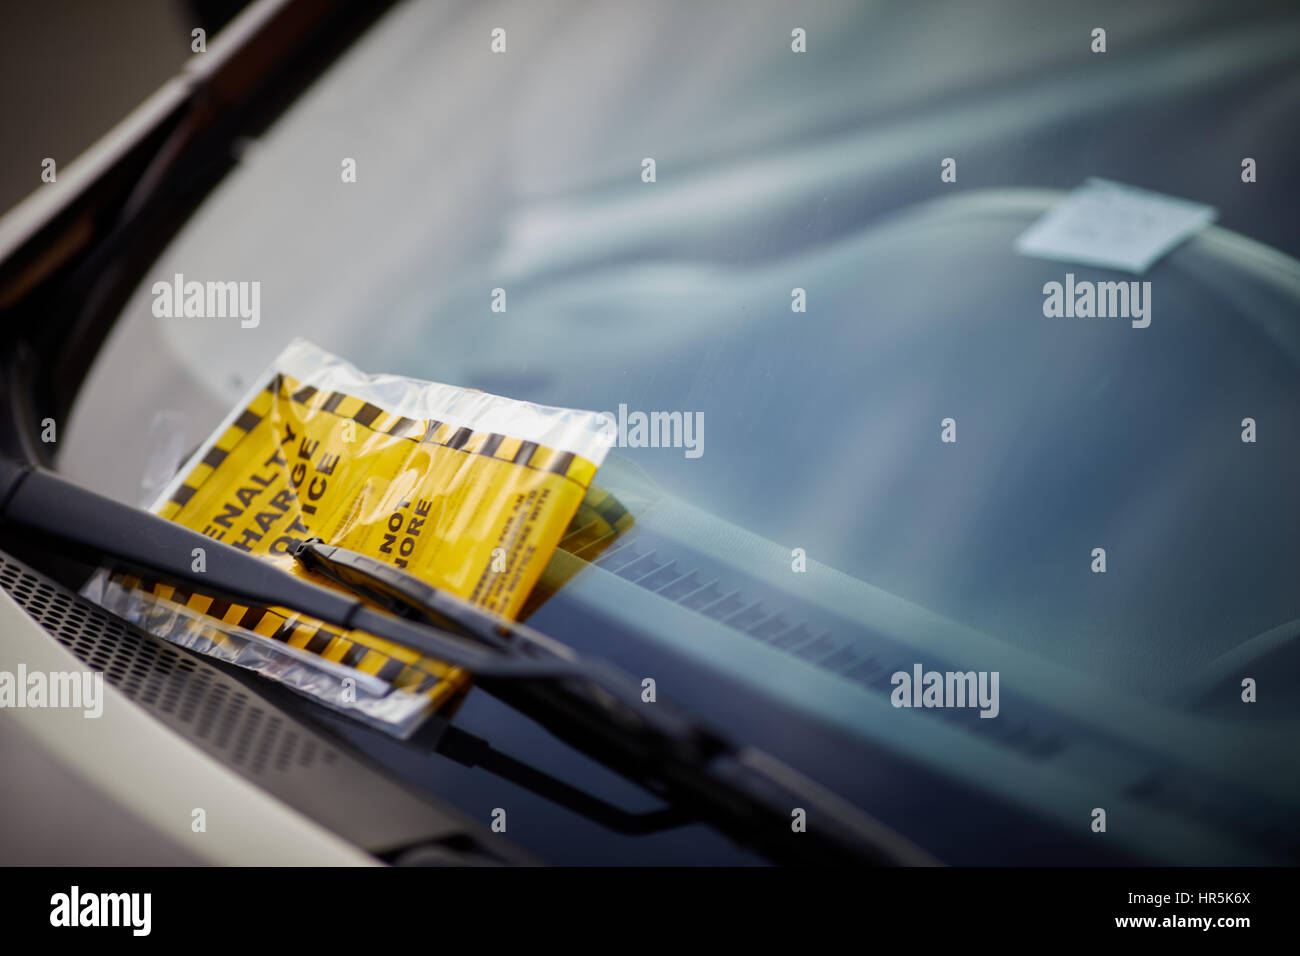 Manchester City Council official Penalty Charge Notice parking fine attached car windscreen plastic warning bag - Stock Image